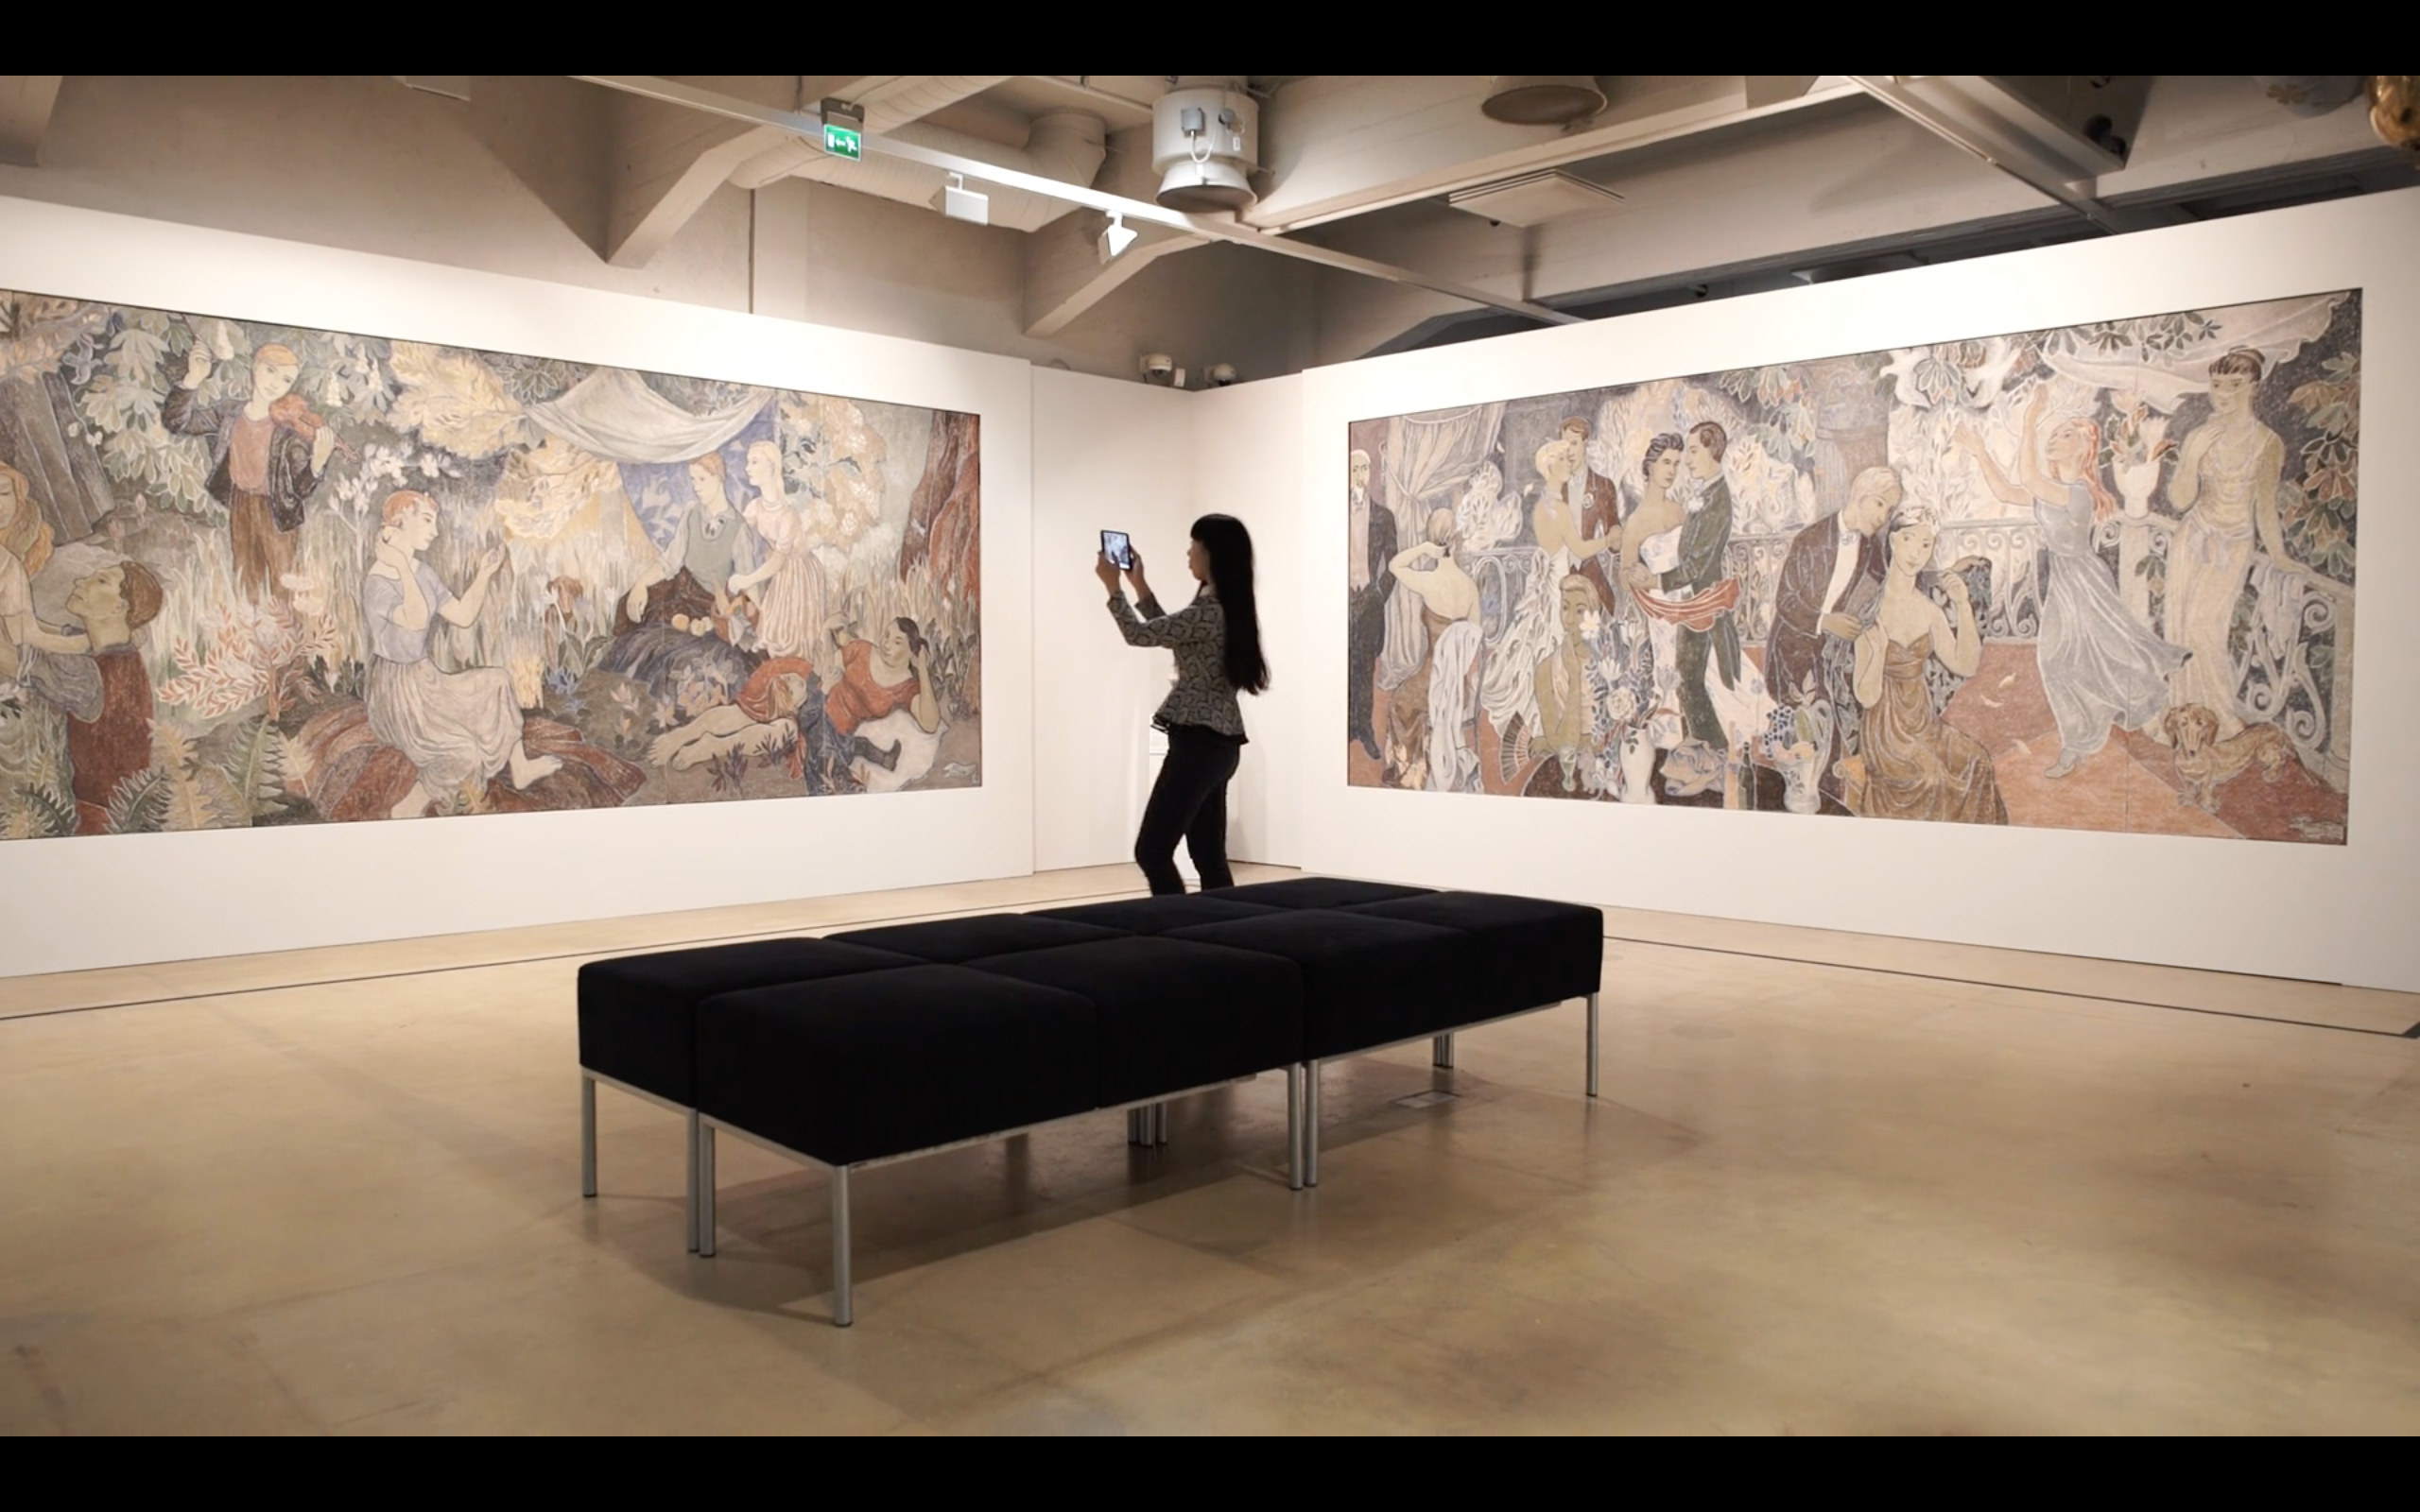 AR gave new life to famous frescoes